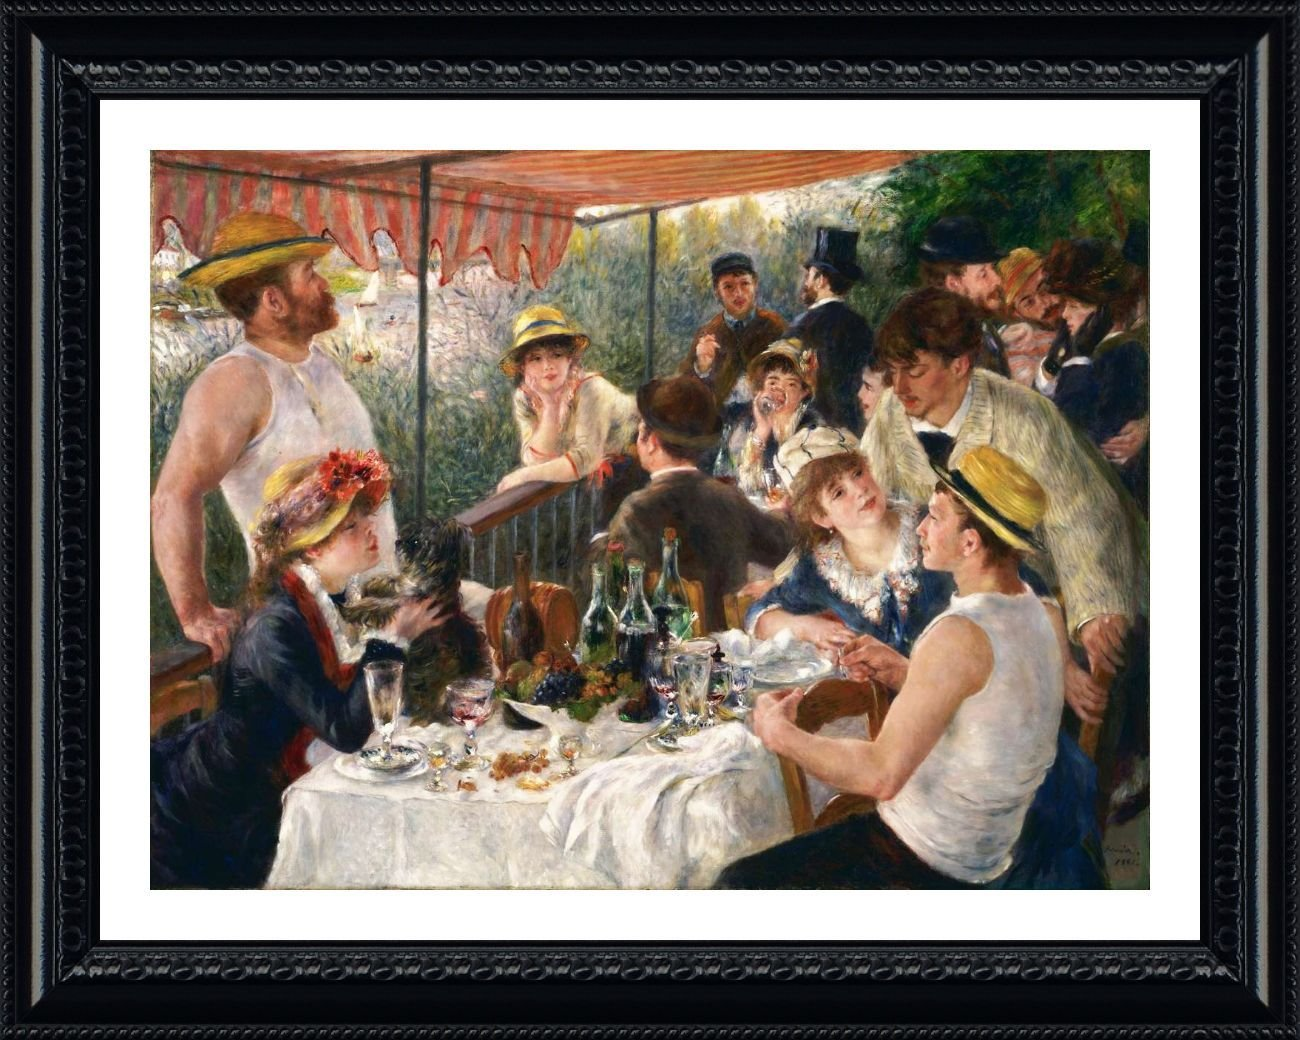 Alonline Art - Luncheon Of The Boating Party by Auguste Renoir | Black framed picture printed on 100% cotton canvas, attached to the foam board | Ready to hang frame | 31x25 | Wall art home decor Alonline Art Studio